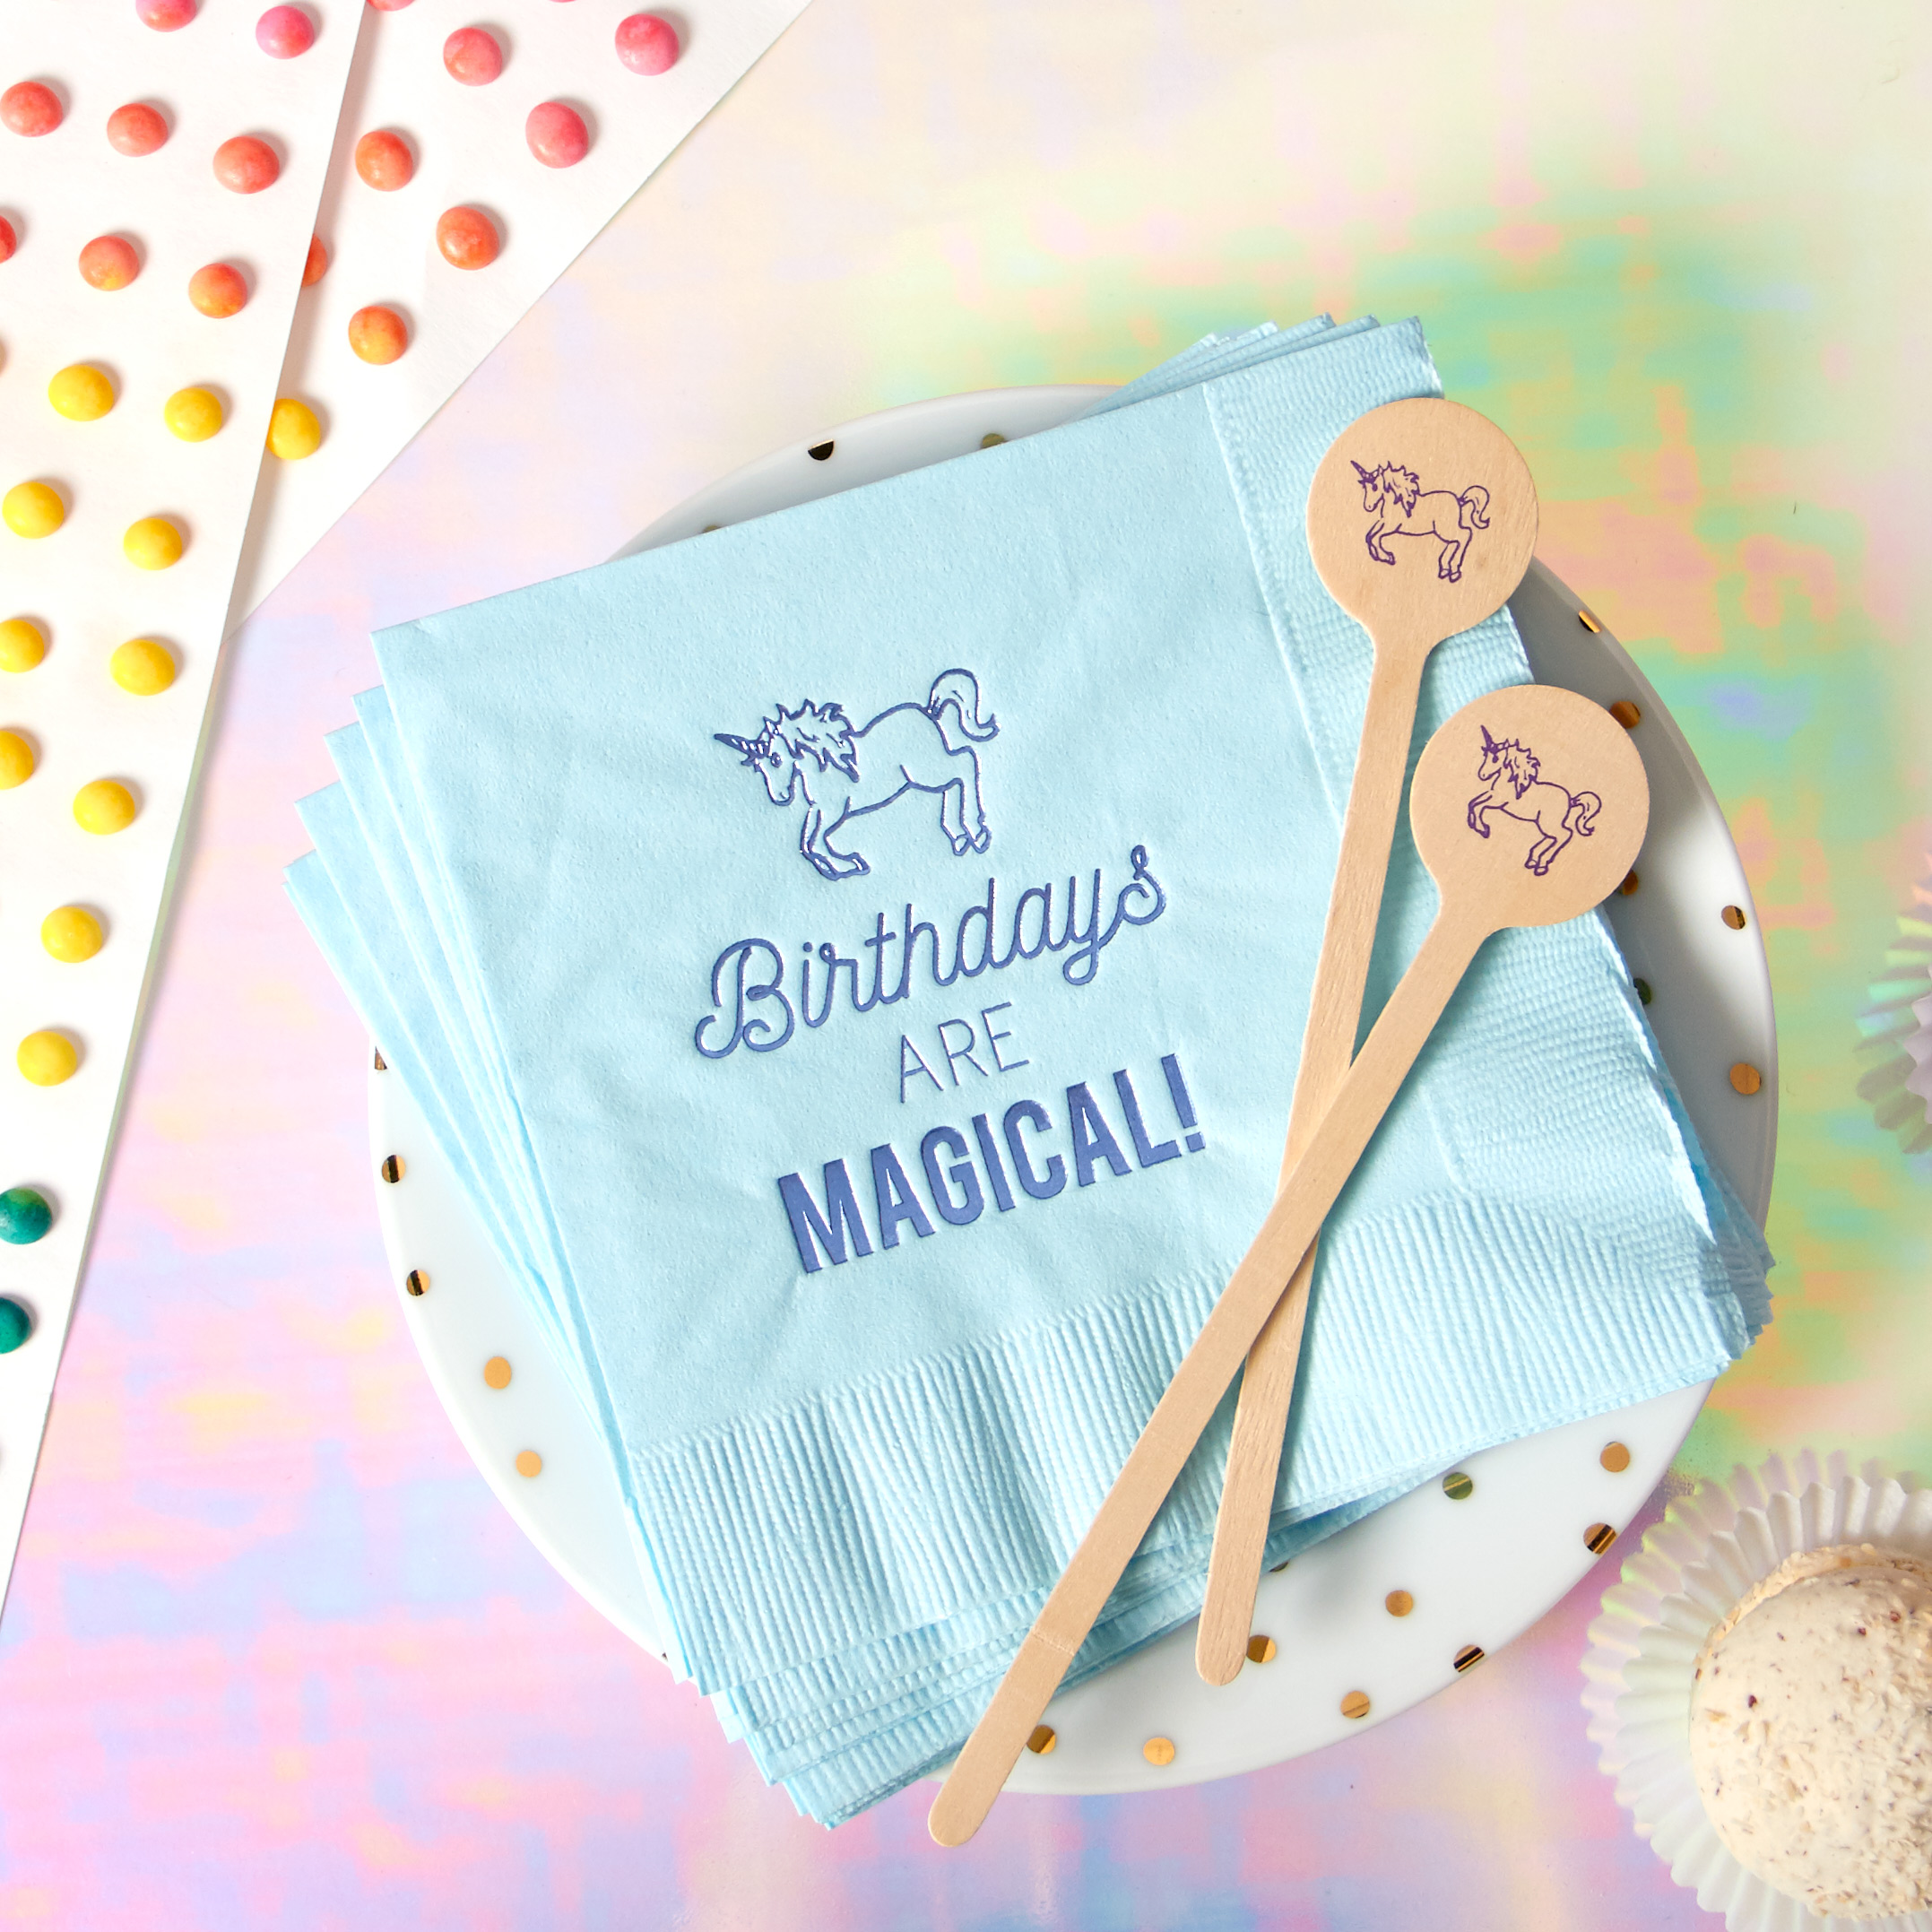 unicorn themed party ideas and unicorn themed party supplies